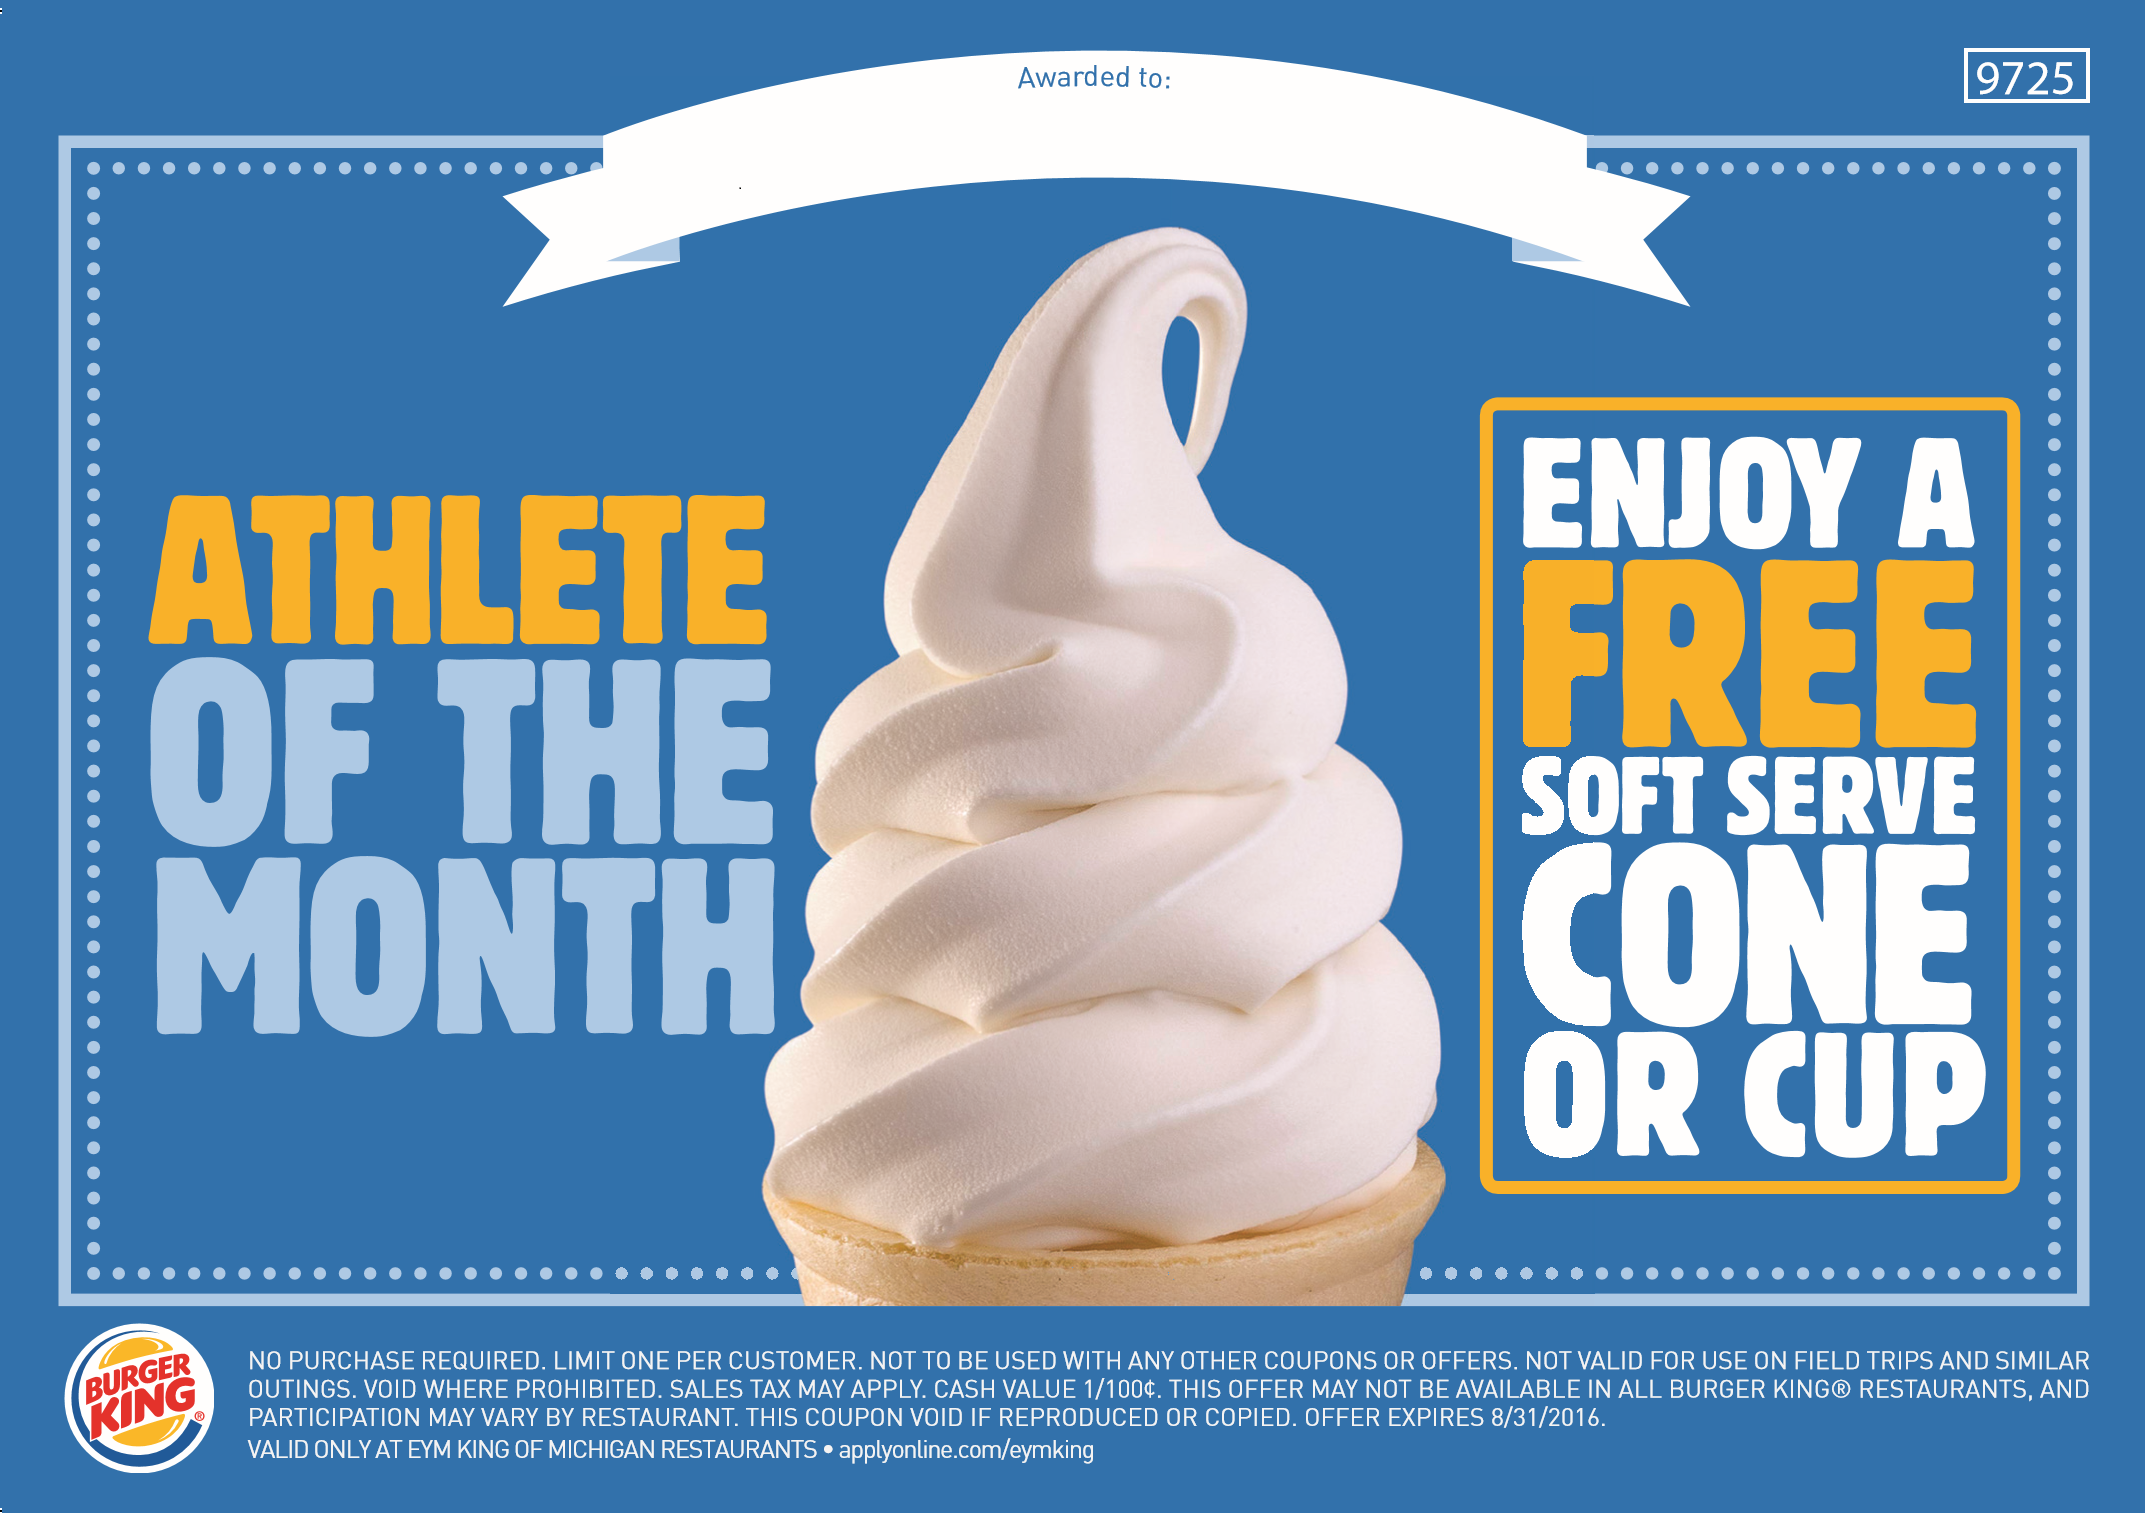 Athelete of the month BK